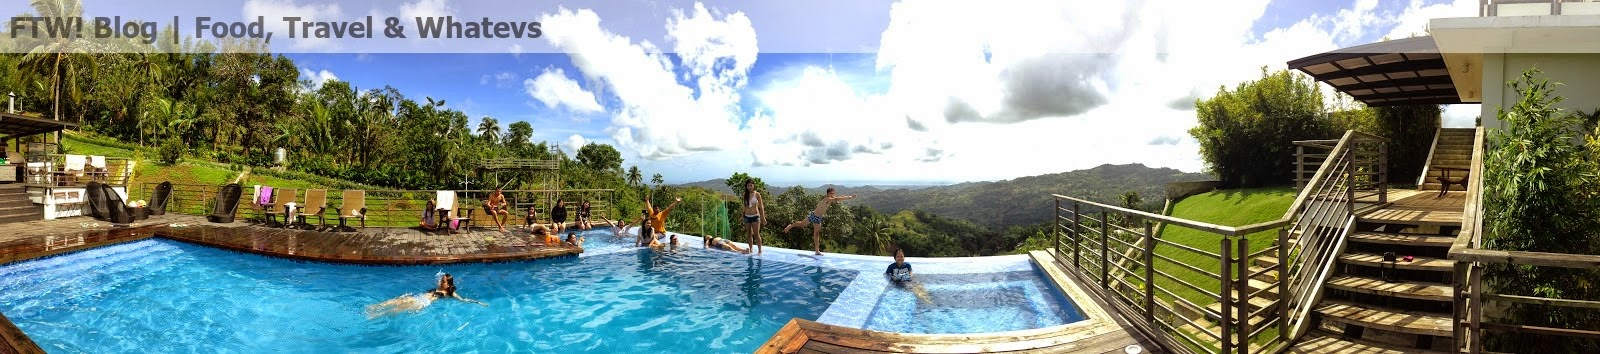 Rancho Cancio, Infinity Pool, Jacuzzi FTW! Blog, zhequia.blogspot.com, #032escapades, retreat house, private resort